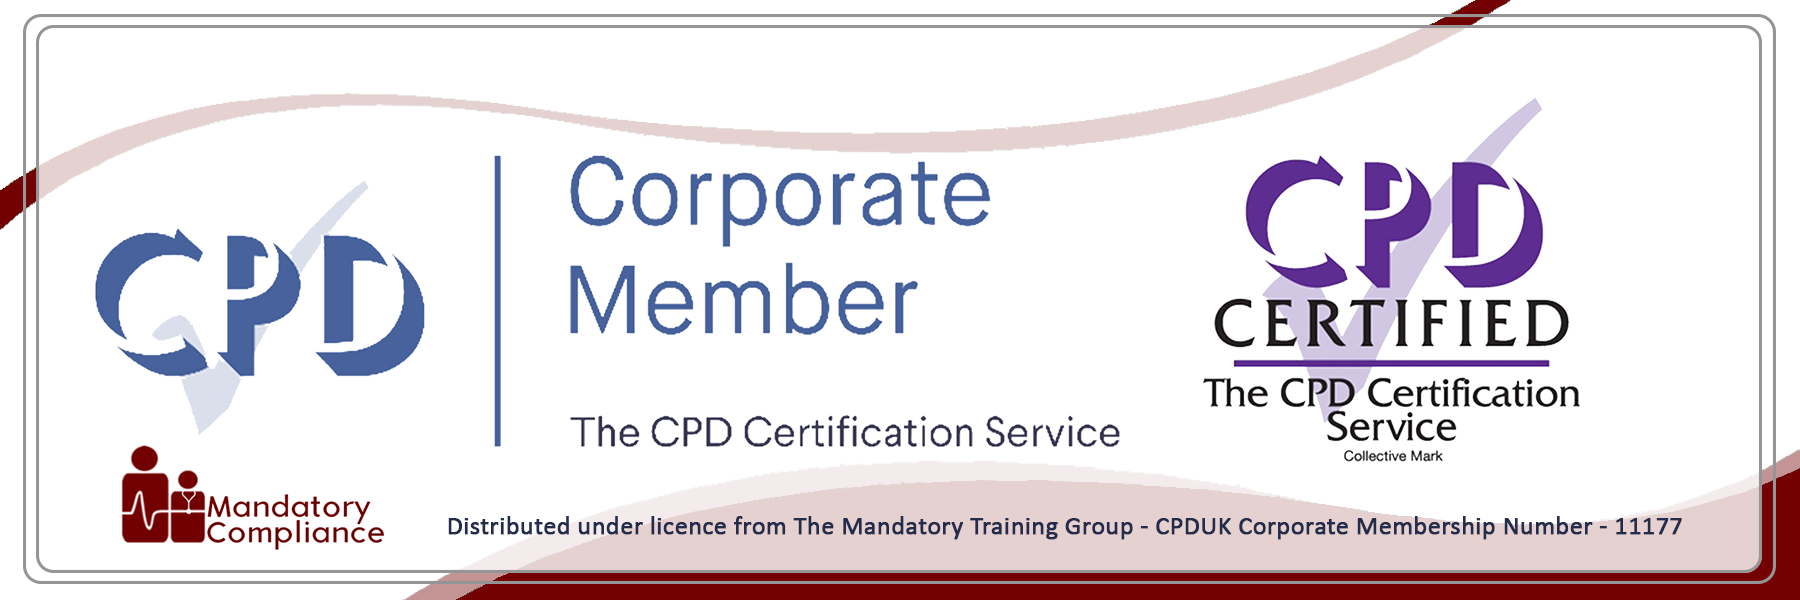 First Aid Training - Online Training Course - CPD Accredited - Mandatory Compliance UK -